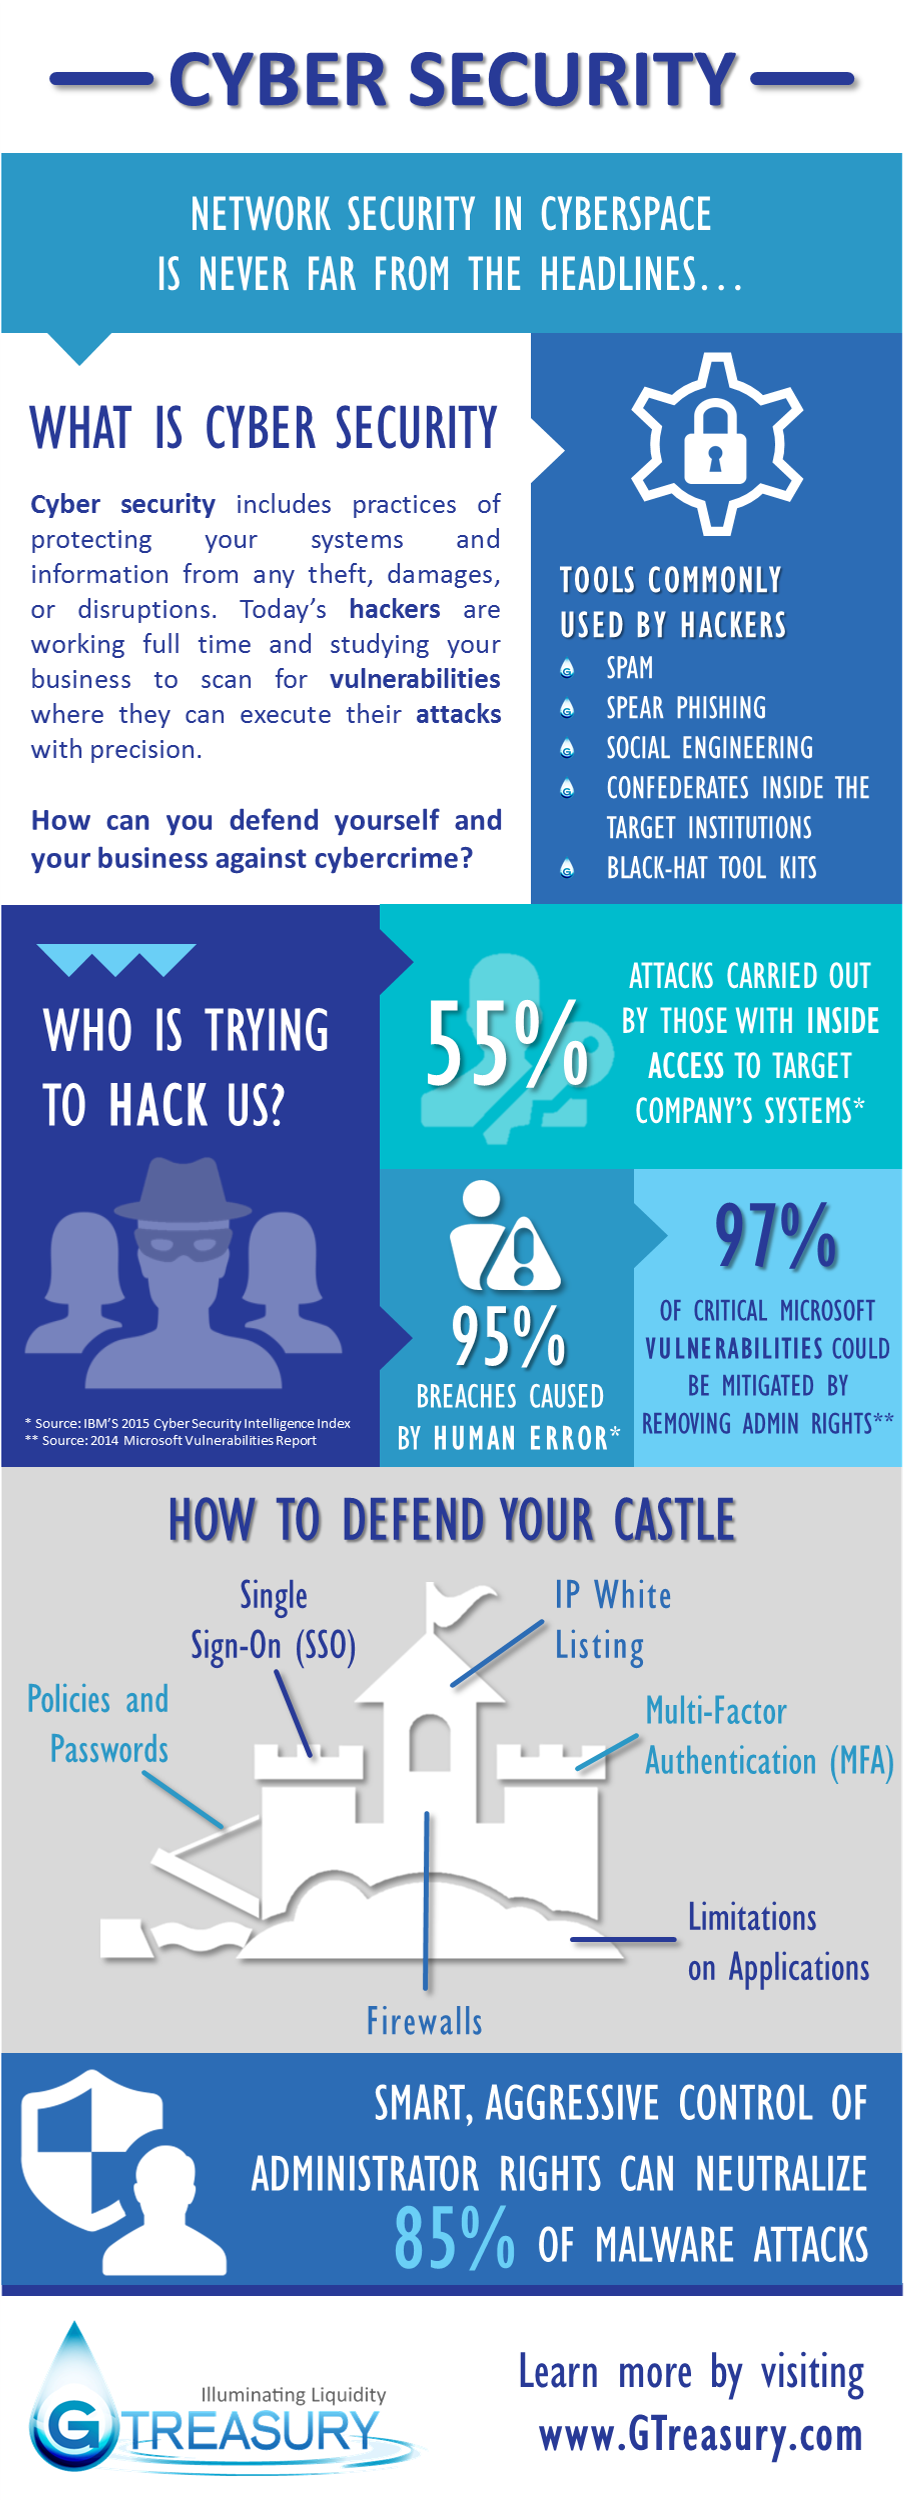 Everything You Need To Know About Cyber Security - Image 1